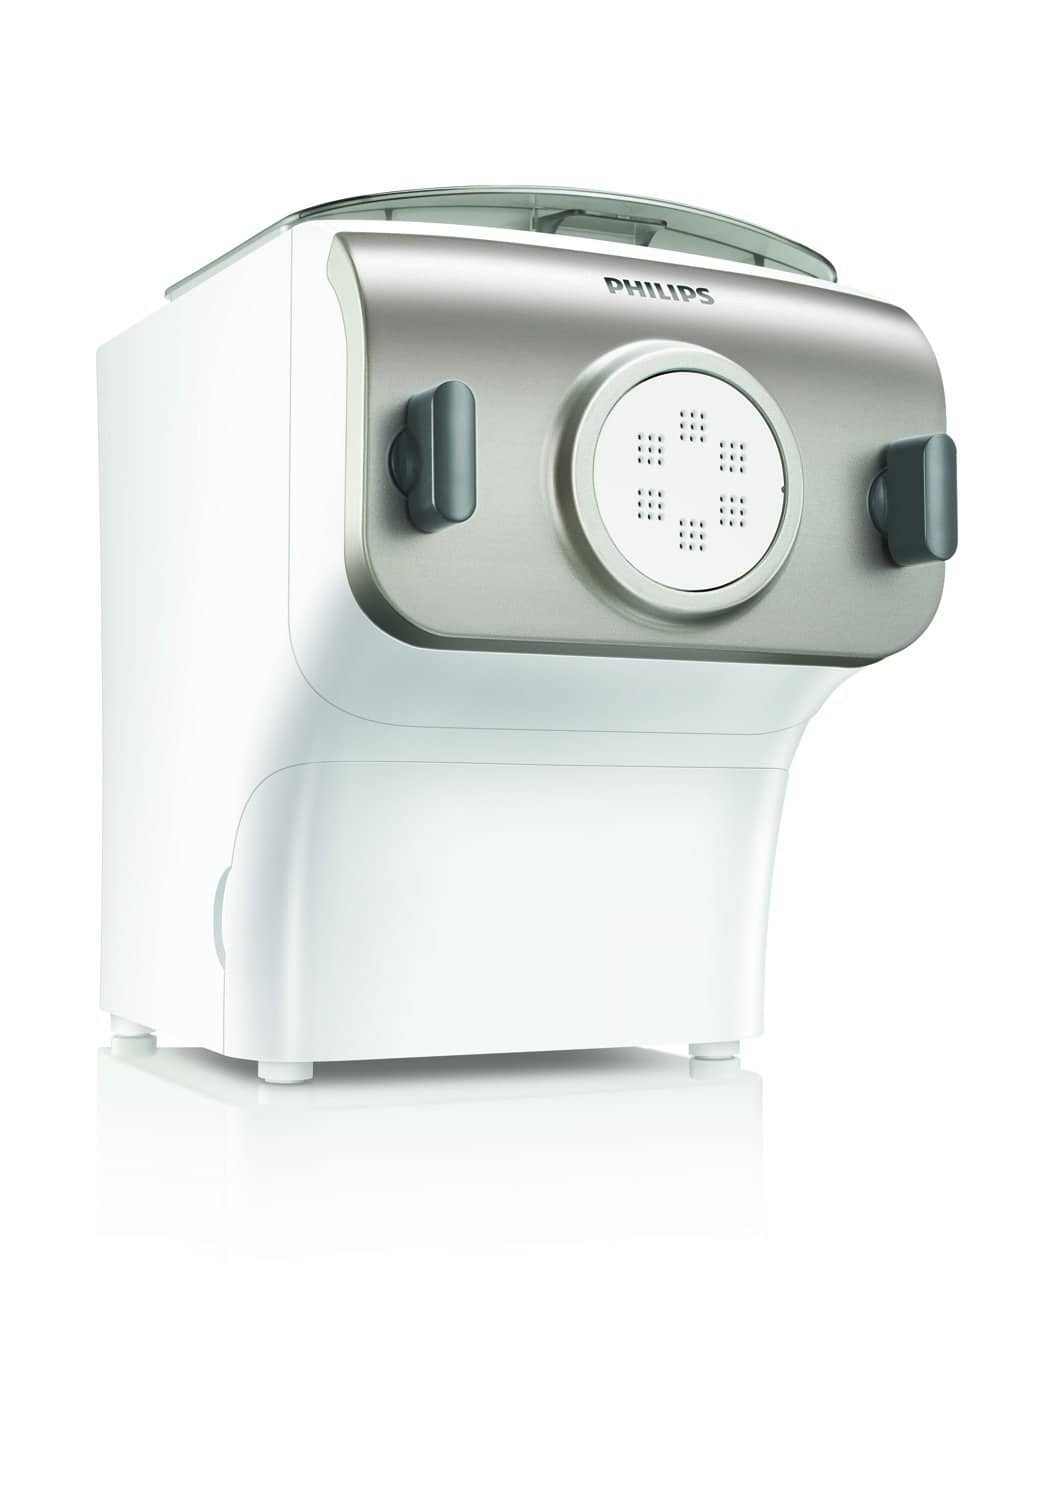 Philips pasta maker brand new now 215 at Amazon